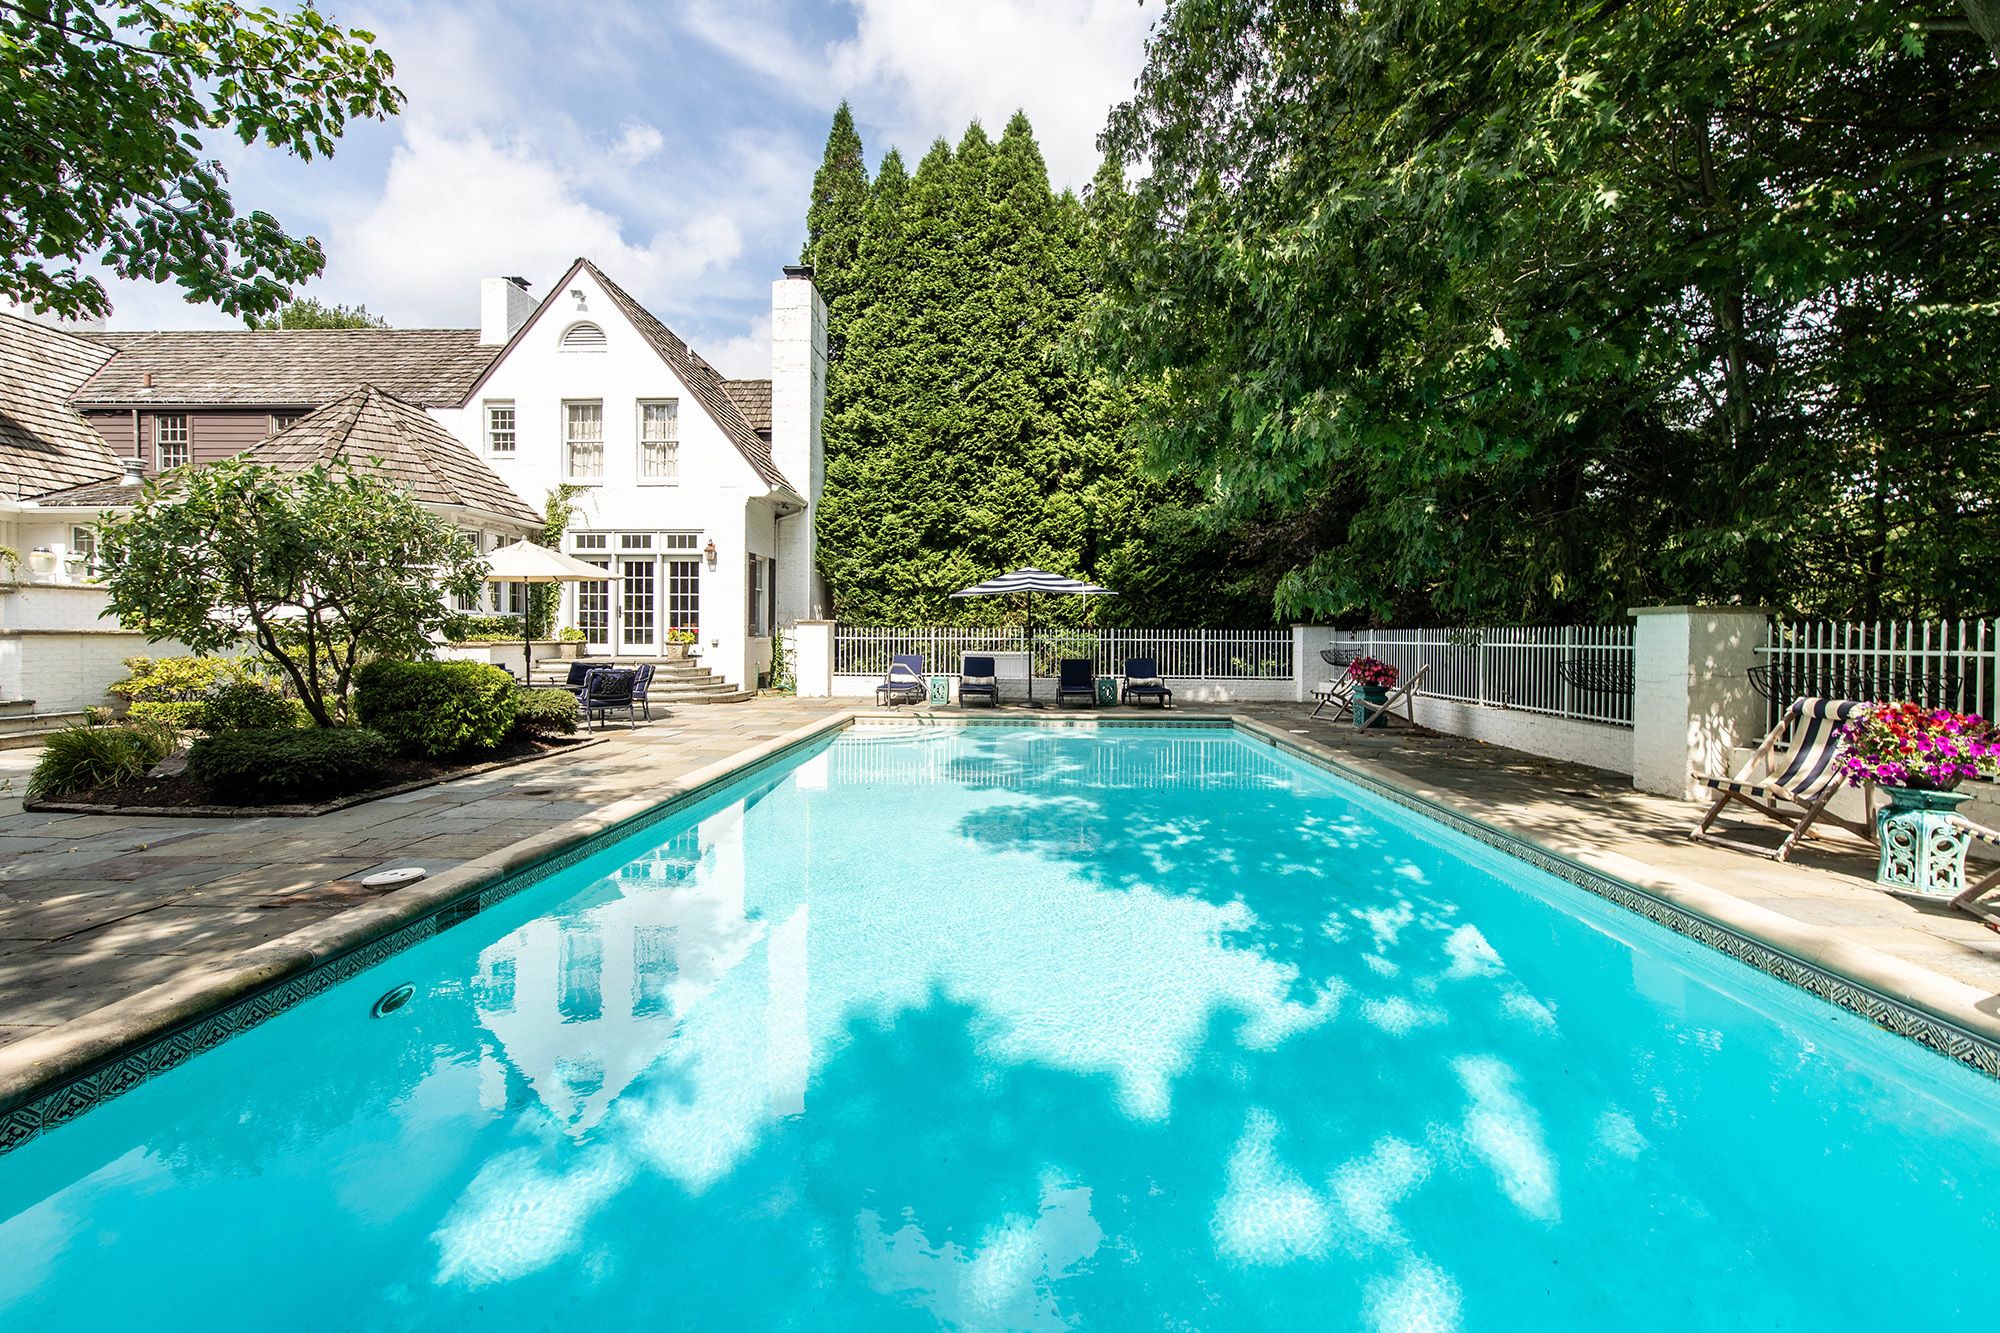 15157 Hemlock pool view